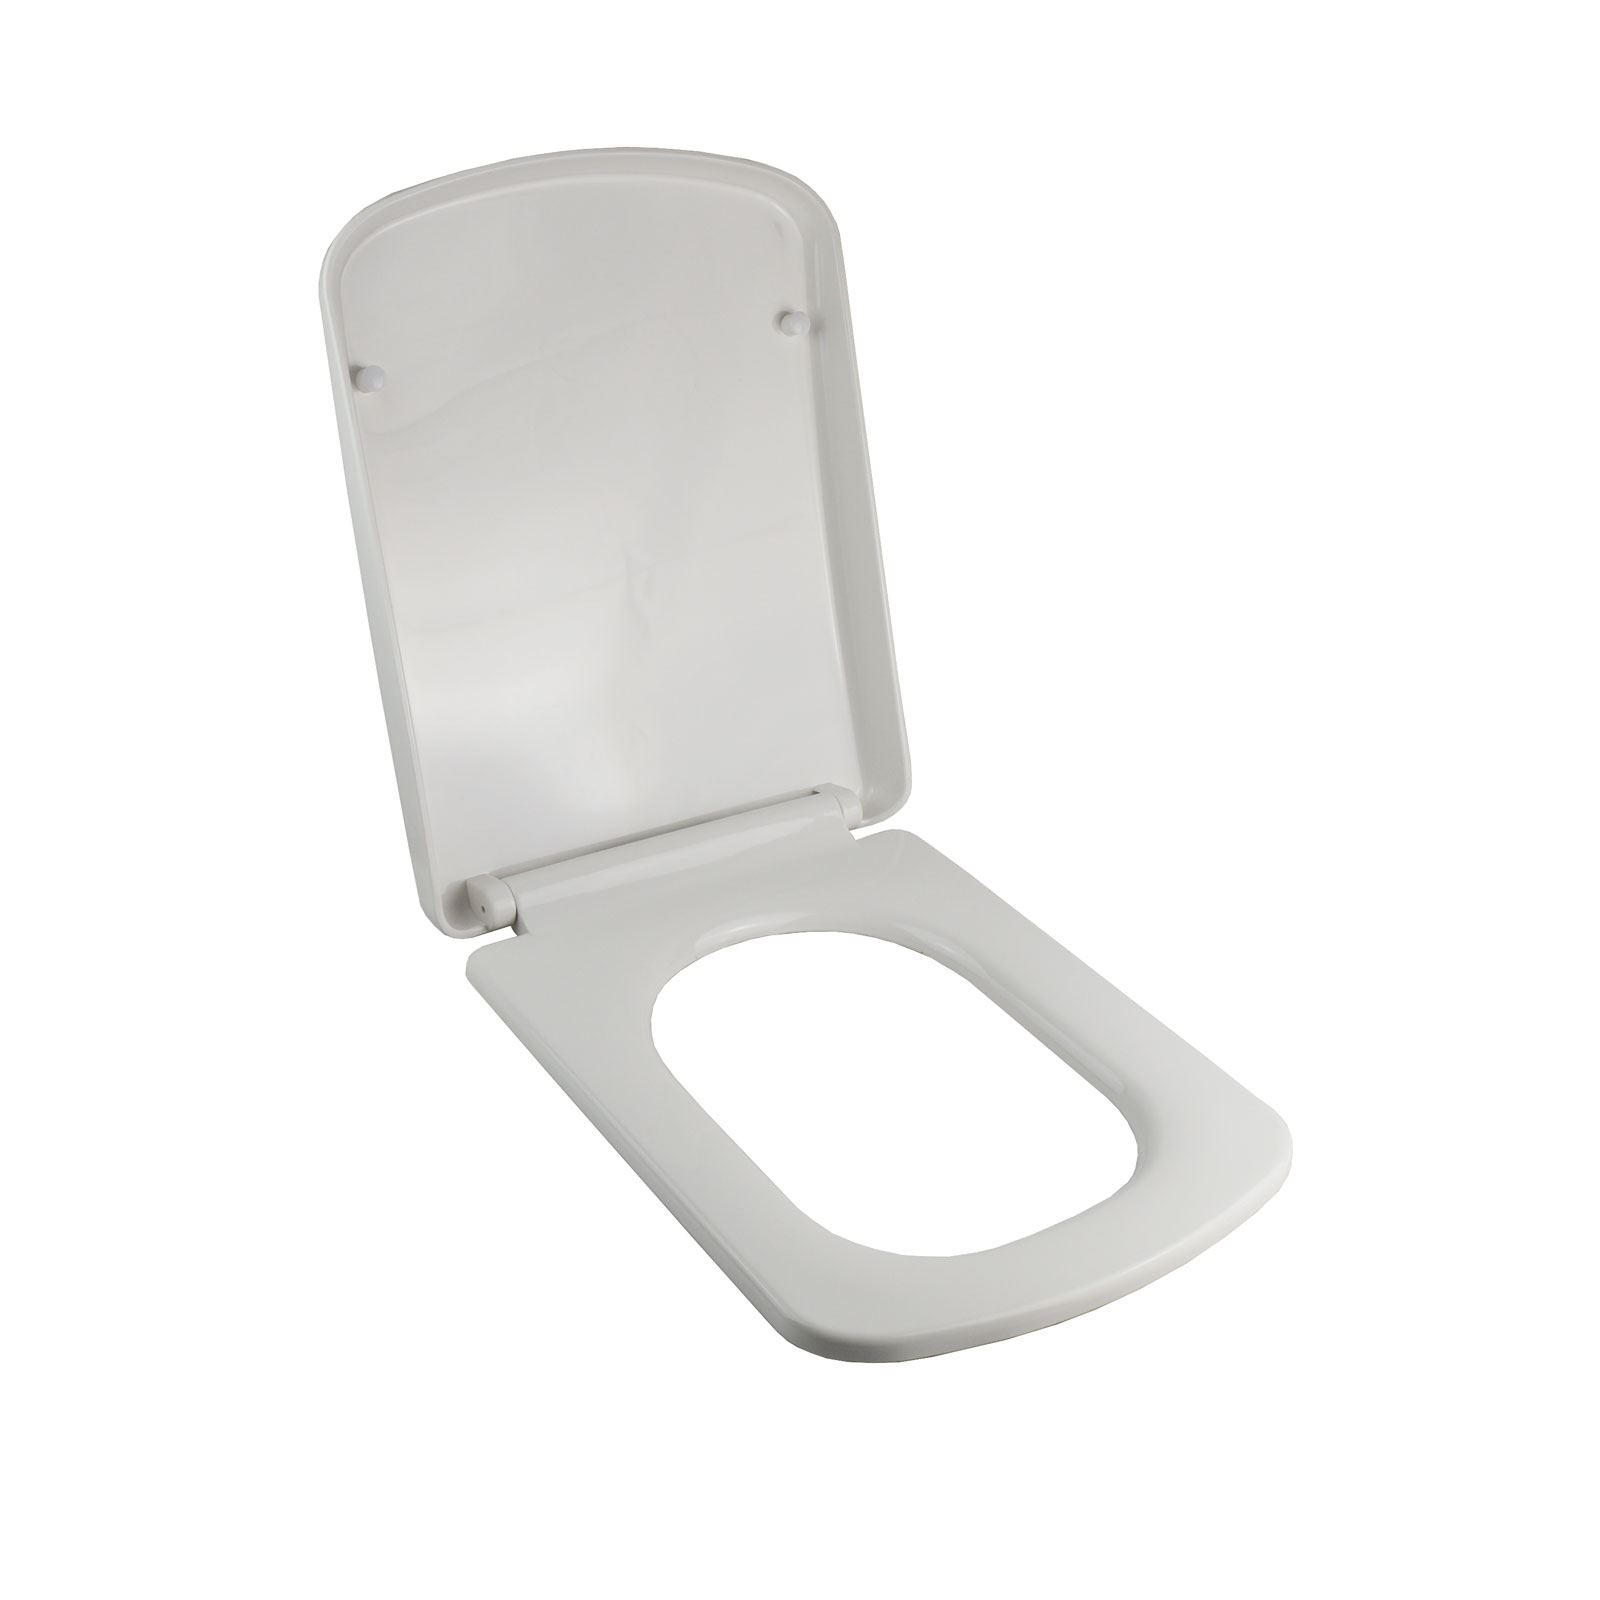 square toilet seat fittings. LUXURY SQUARE CUBE SOFT CLOSE HEAVY DUTY TOILET SEAT WITH TOP FIXING